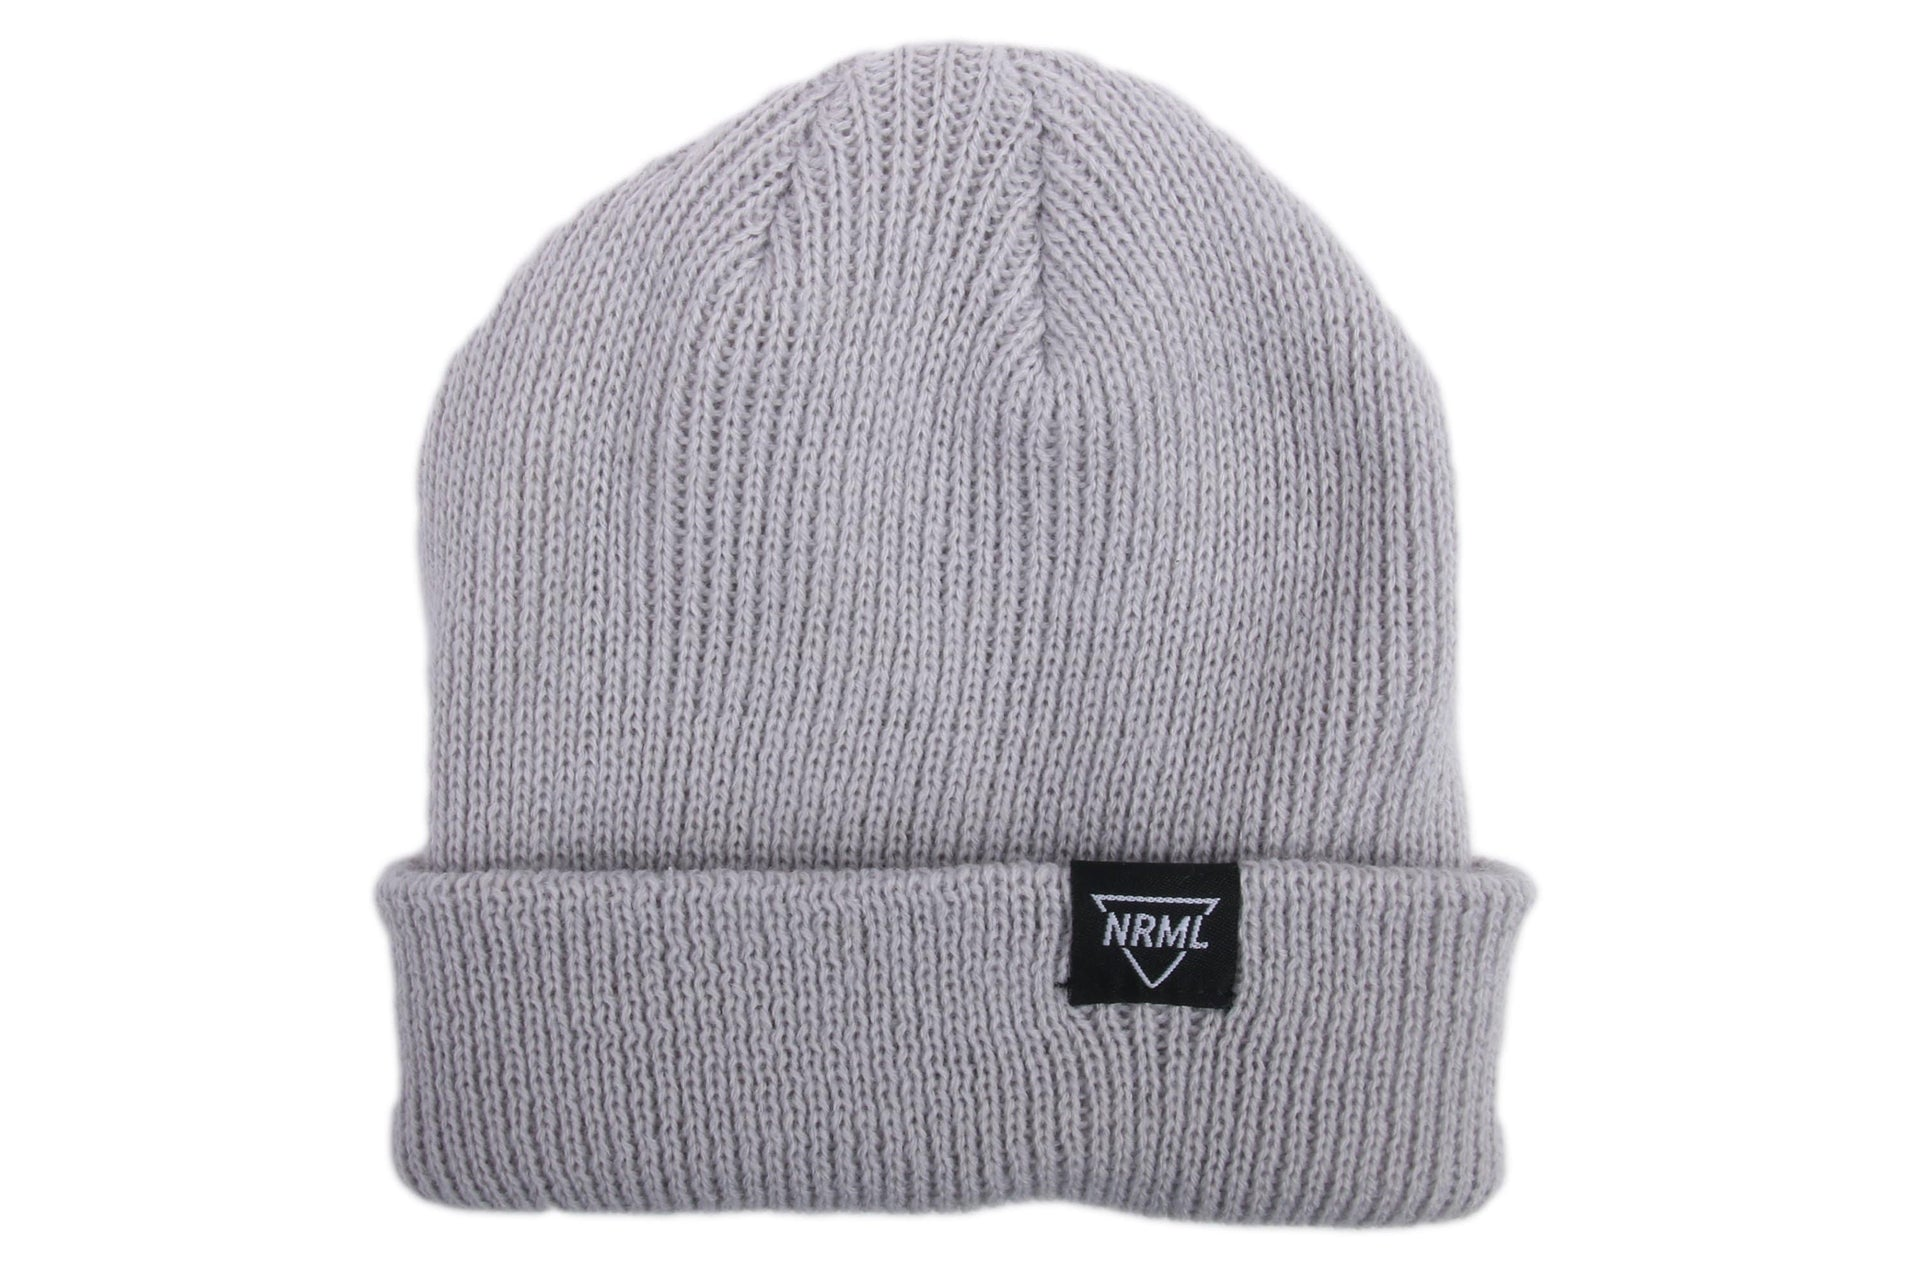 NRML BEANIE GREY HATS NRML GREY ONE SIZE